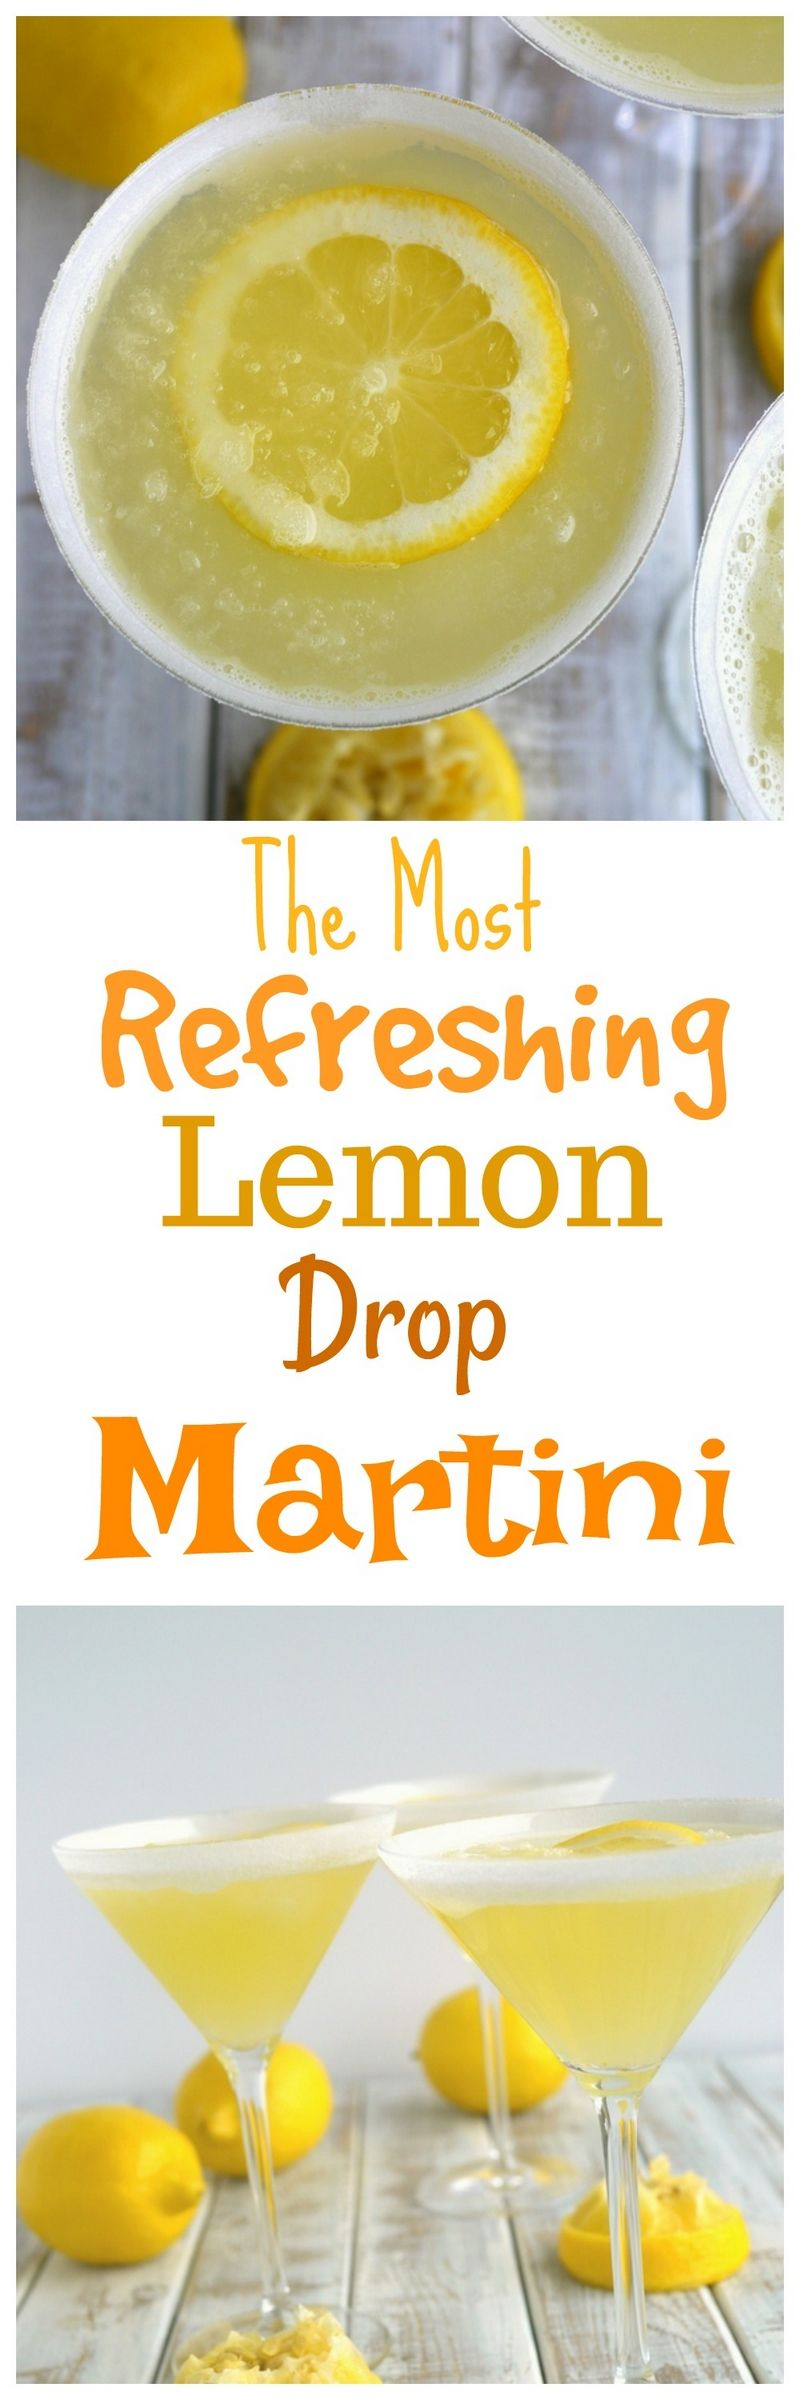 The perfect lemon drop martini should be refreshingly tart, not cloyingly sweet. Lucky for you this is The Most Refreshing Lemon Drop Martini! Give it a try soon from .